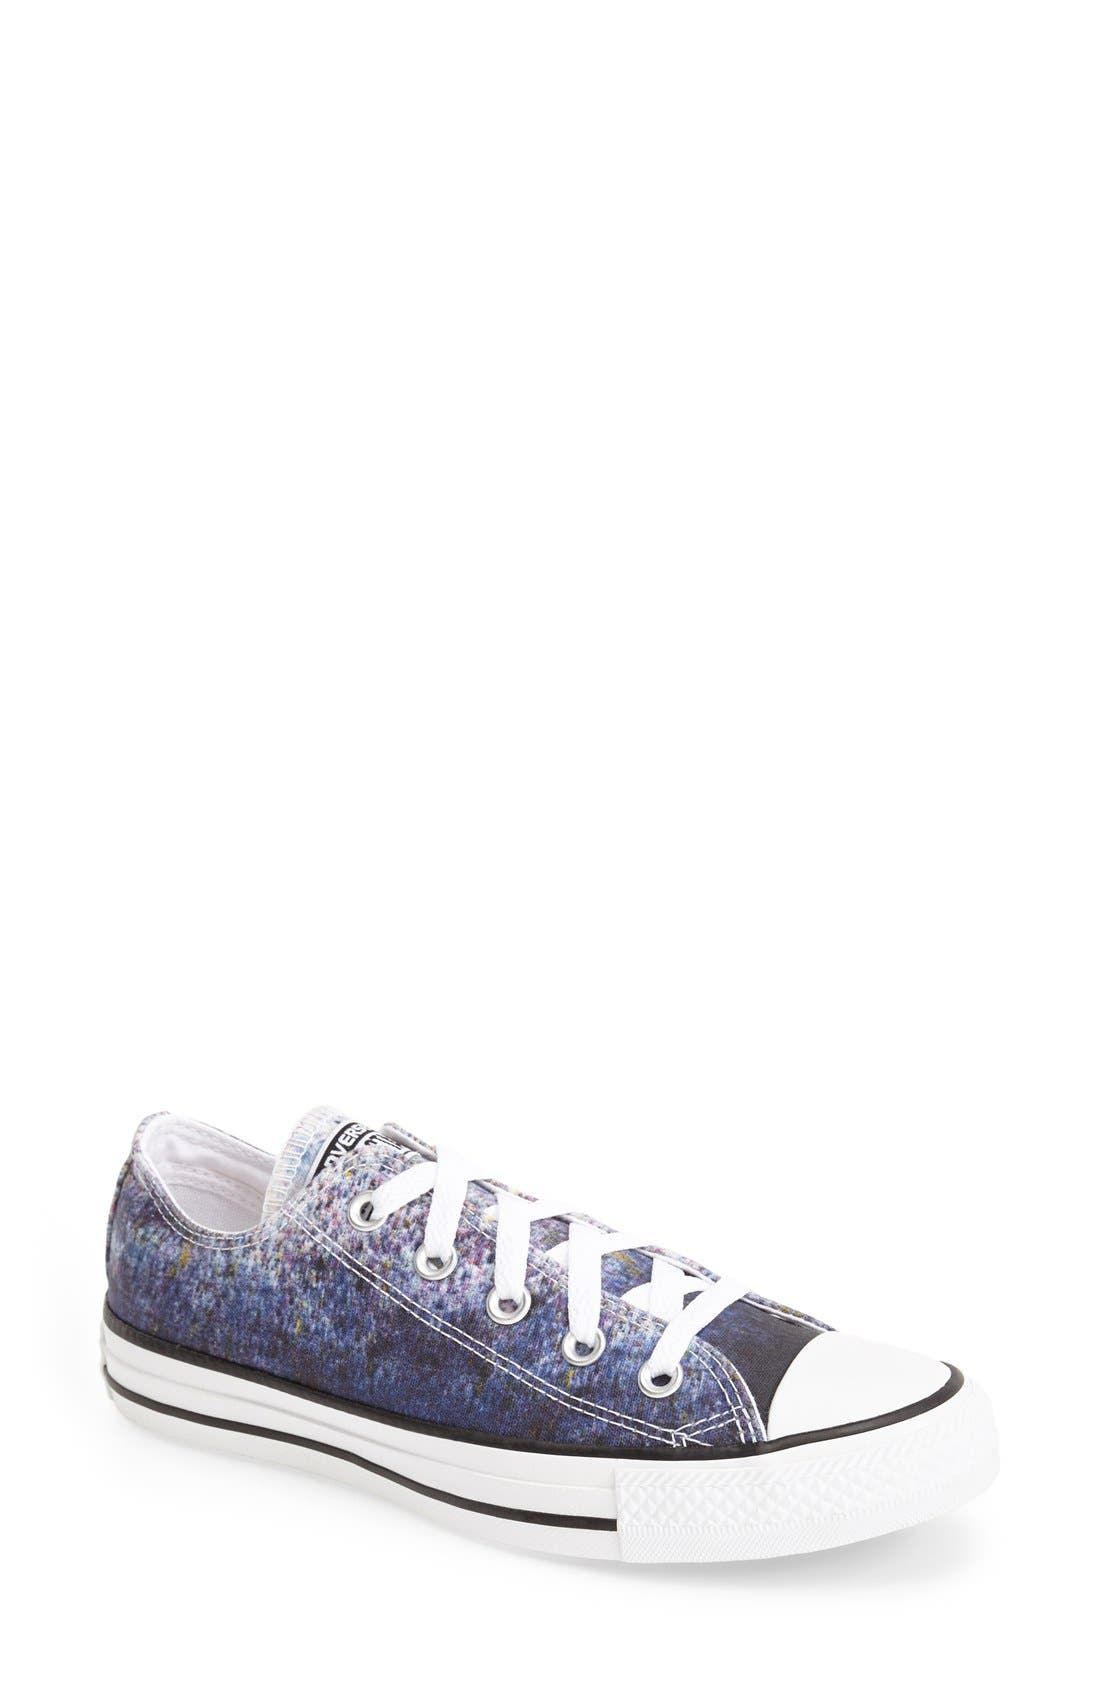 Alternate Image 1 Selected - Converse Chuck Taylor® All Star® 'Digital Ox' Sneaker (Women)